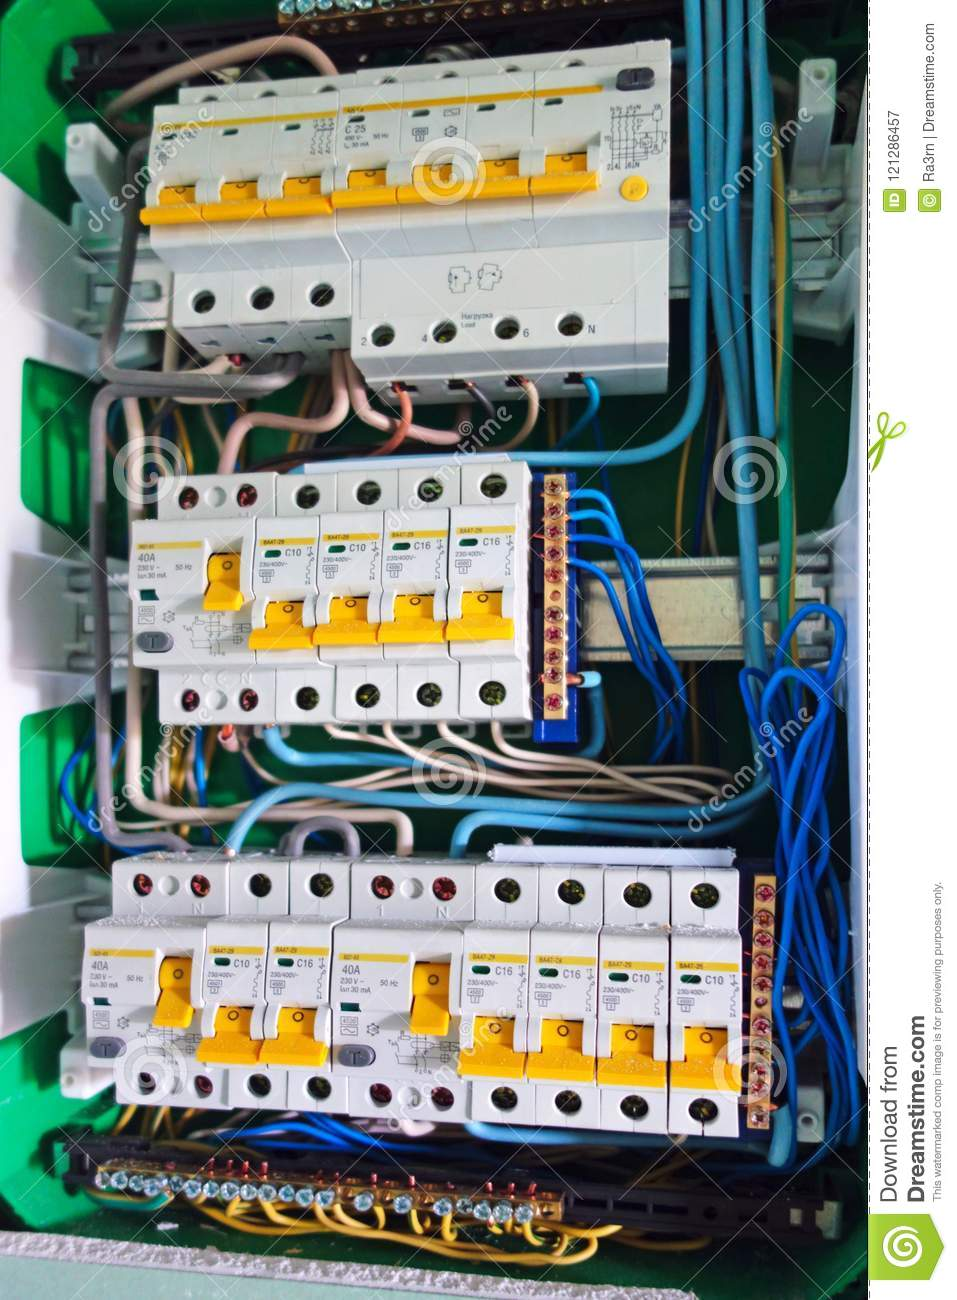 hight resolution of electric board with circuit breakers circuit breaker used on items such as a residential iron hot water heater a kitchen oven or an electric clothes